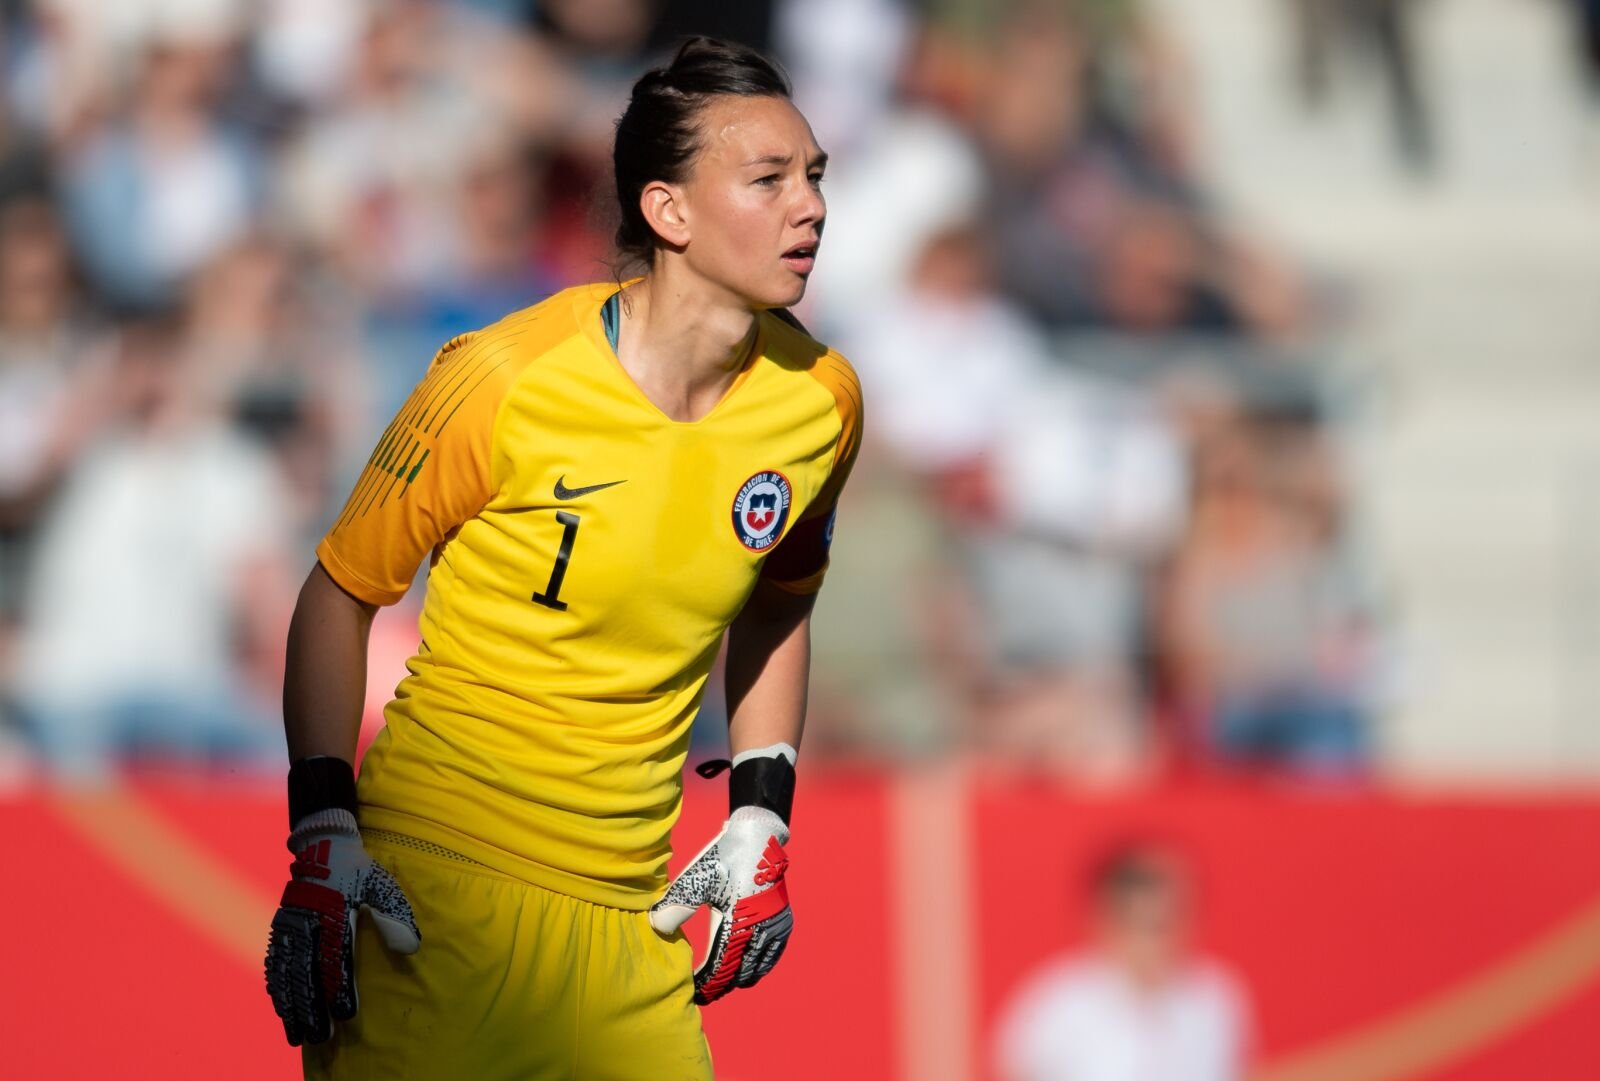 ff73a498880 Christiane Endler made the most insane save in Chile's first game (Video)